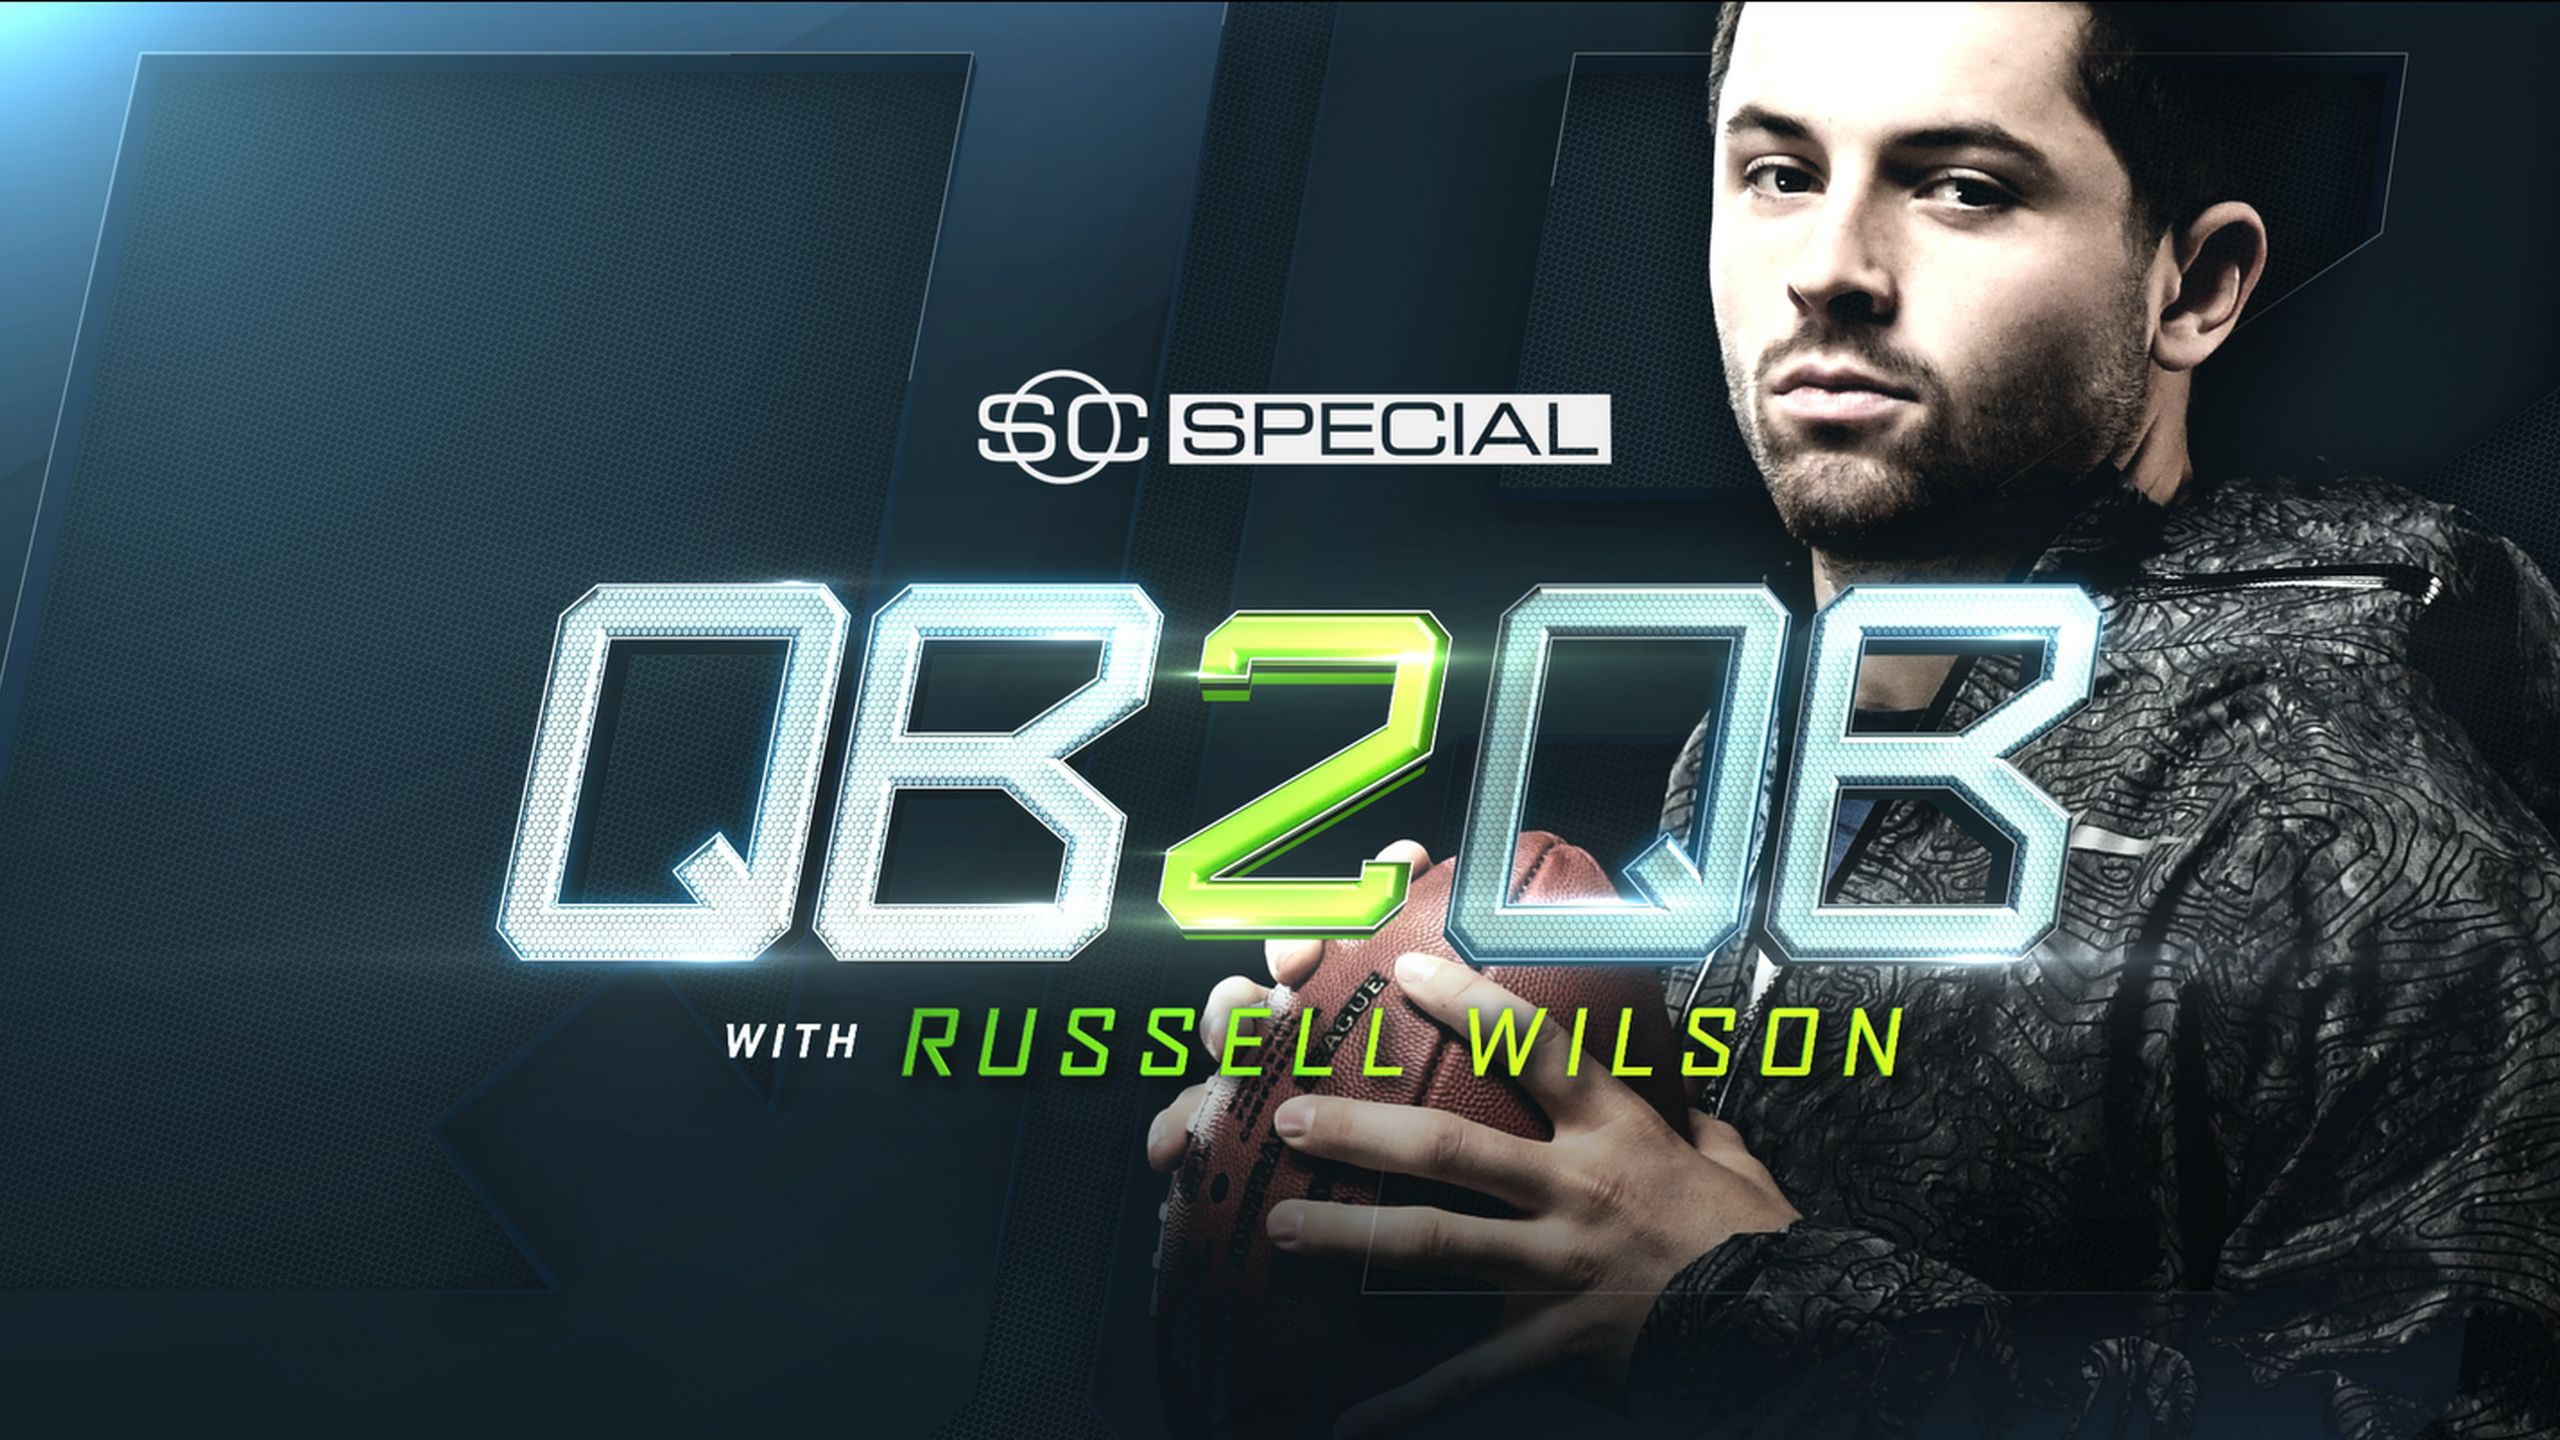 SportsCenter Special presented by Maui Jim Sunglasses: QB2QB with Russell Wilson and Baker Mayfield